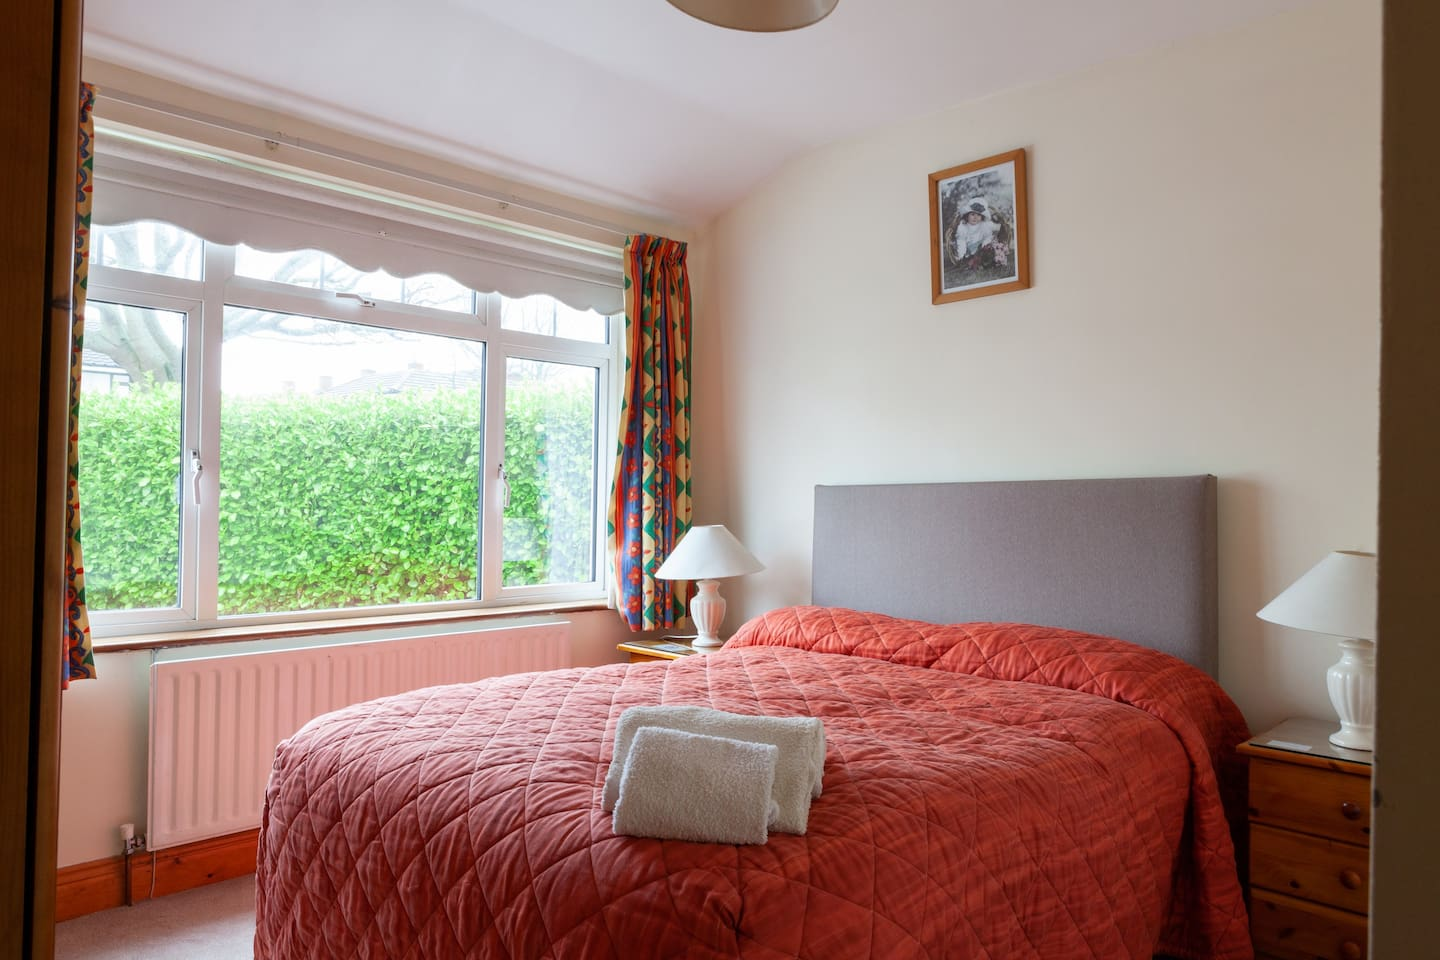 Double bedded Room - en-suite private bathroom. With Continental Breakfast Served each morning.